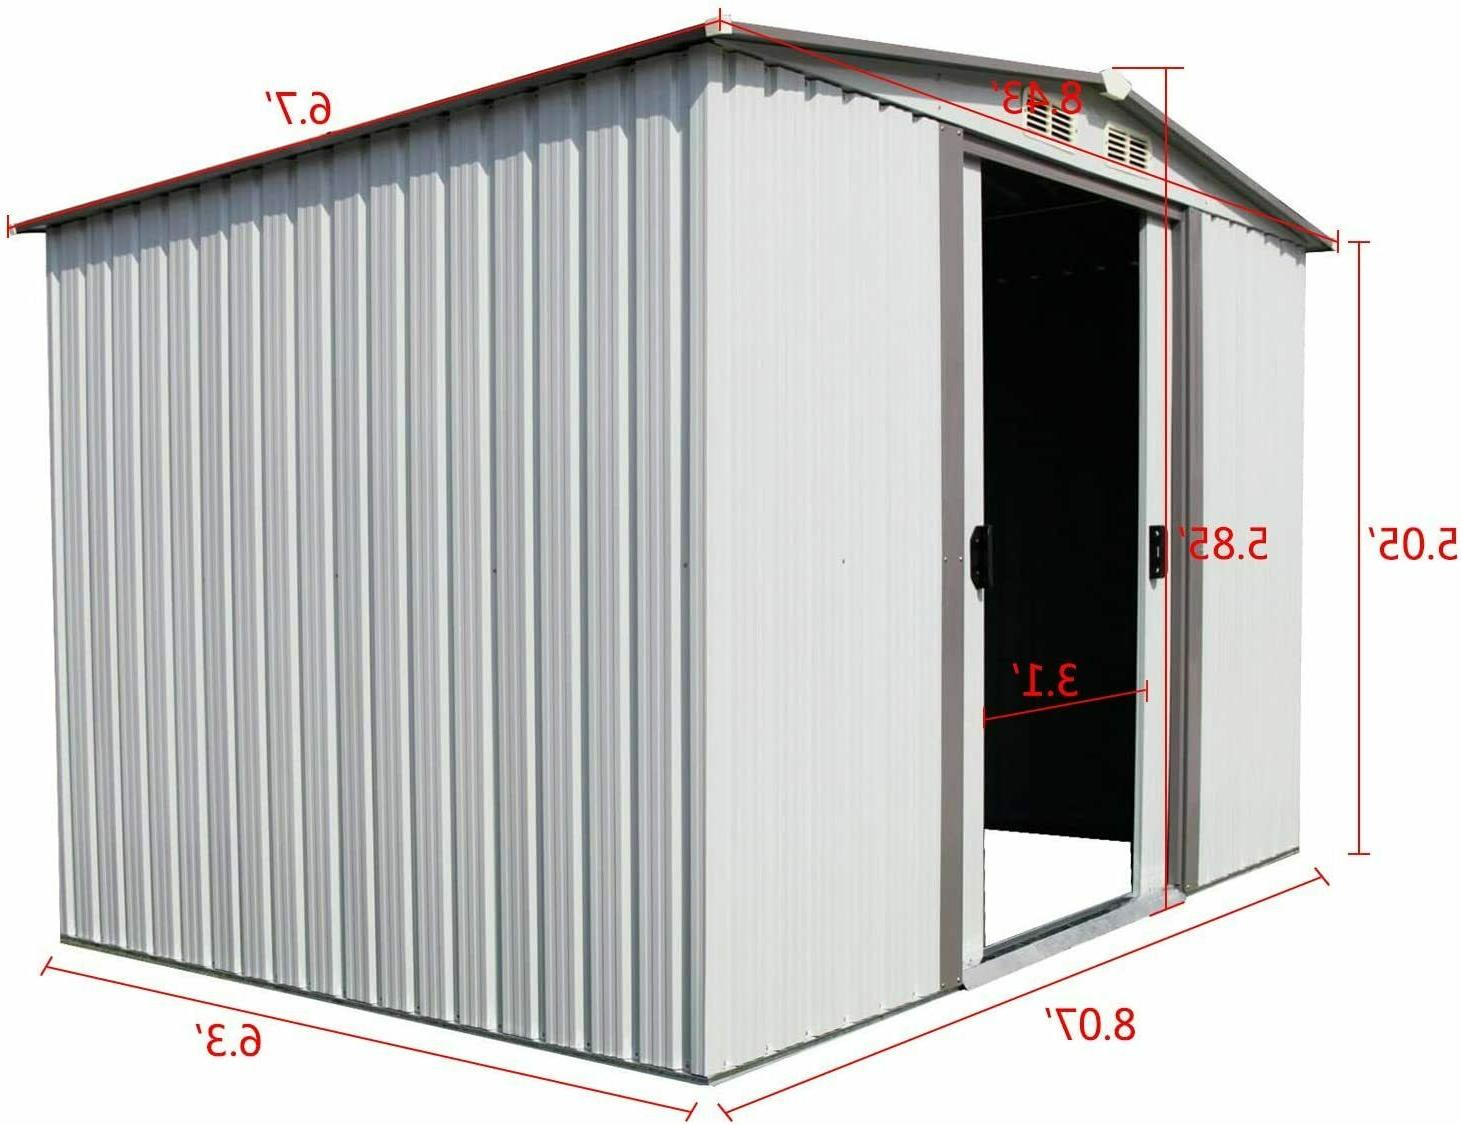 8'x6' Storage Shed Garden Utility House Waterproof